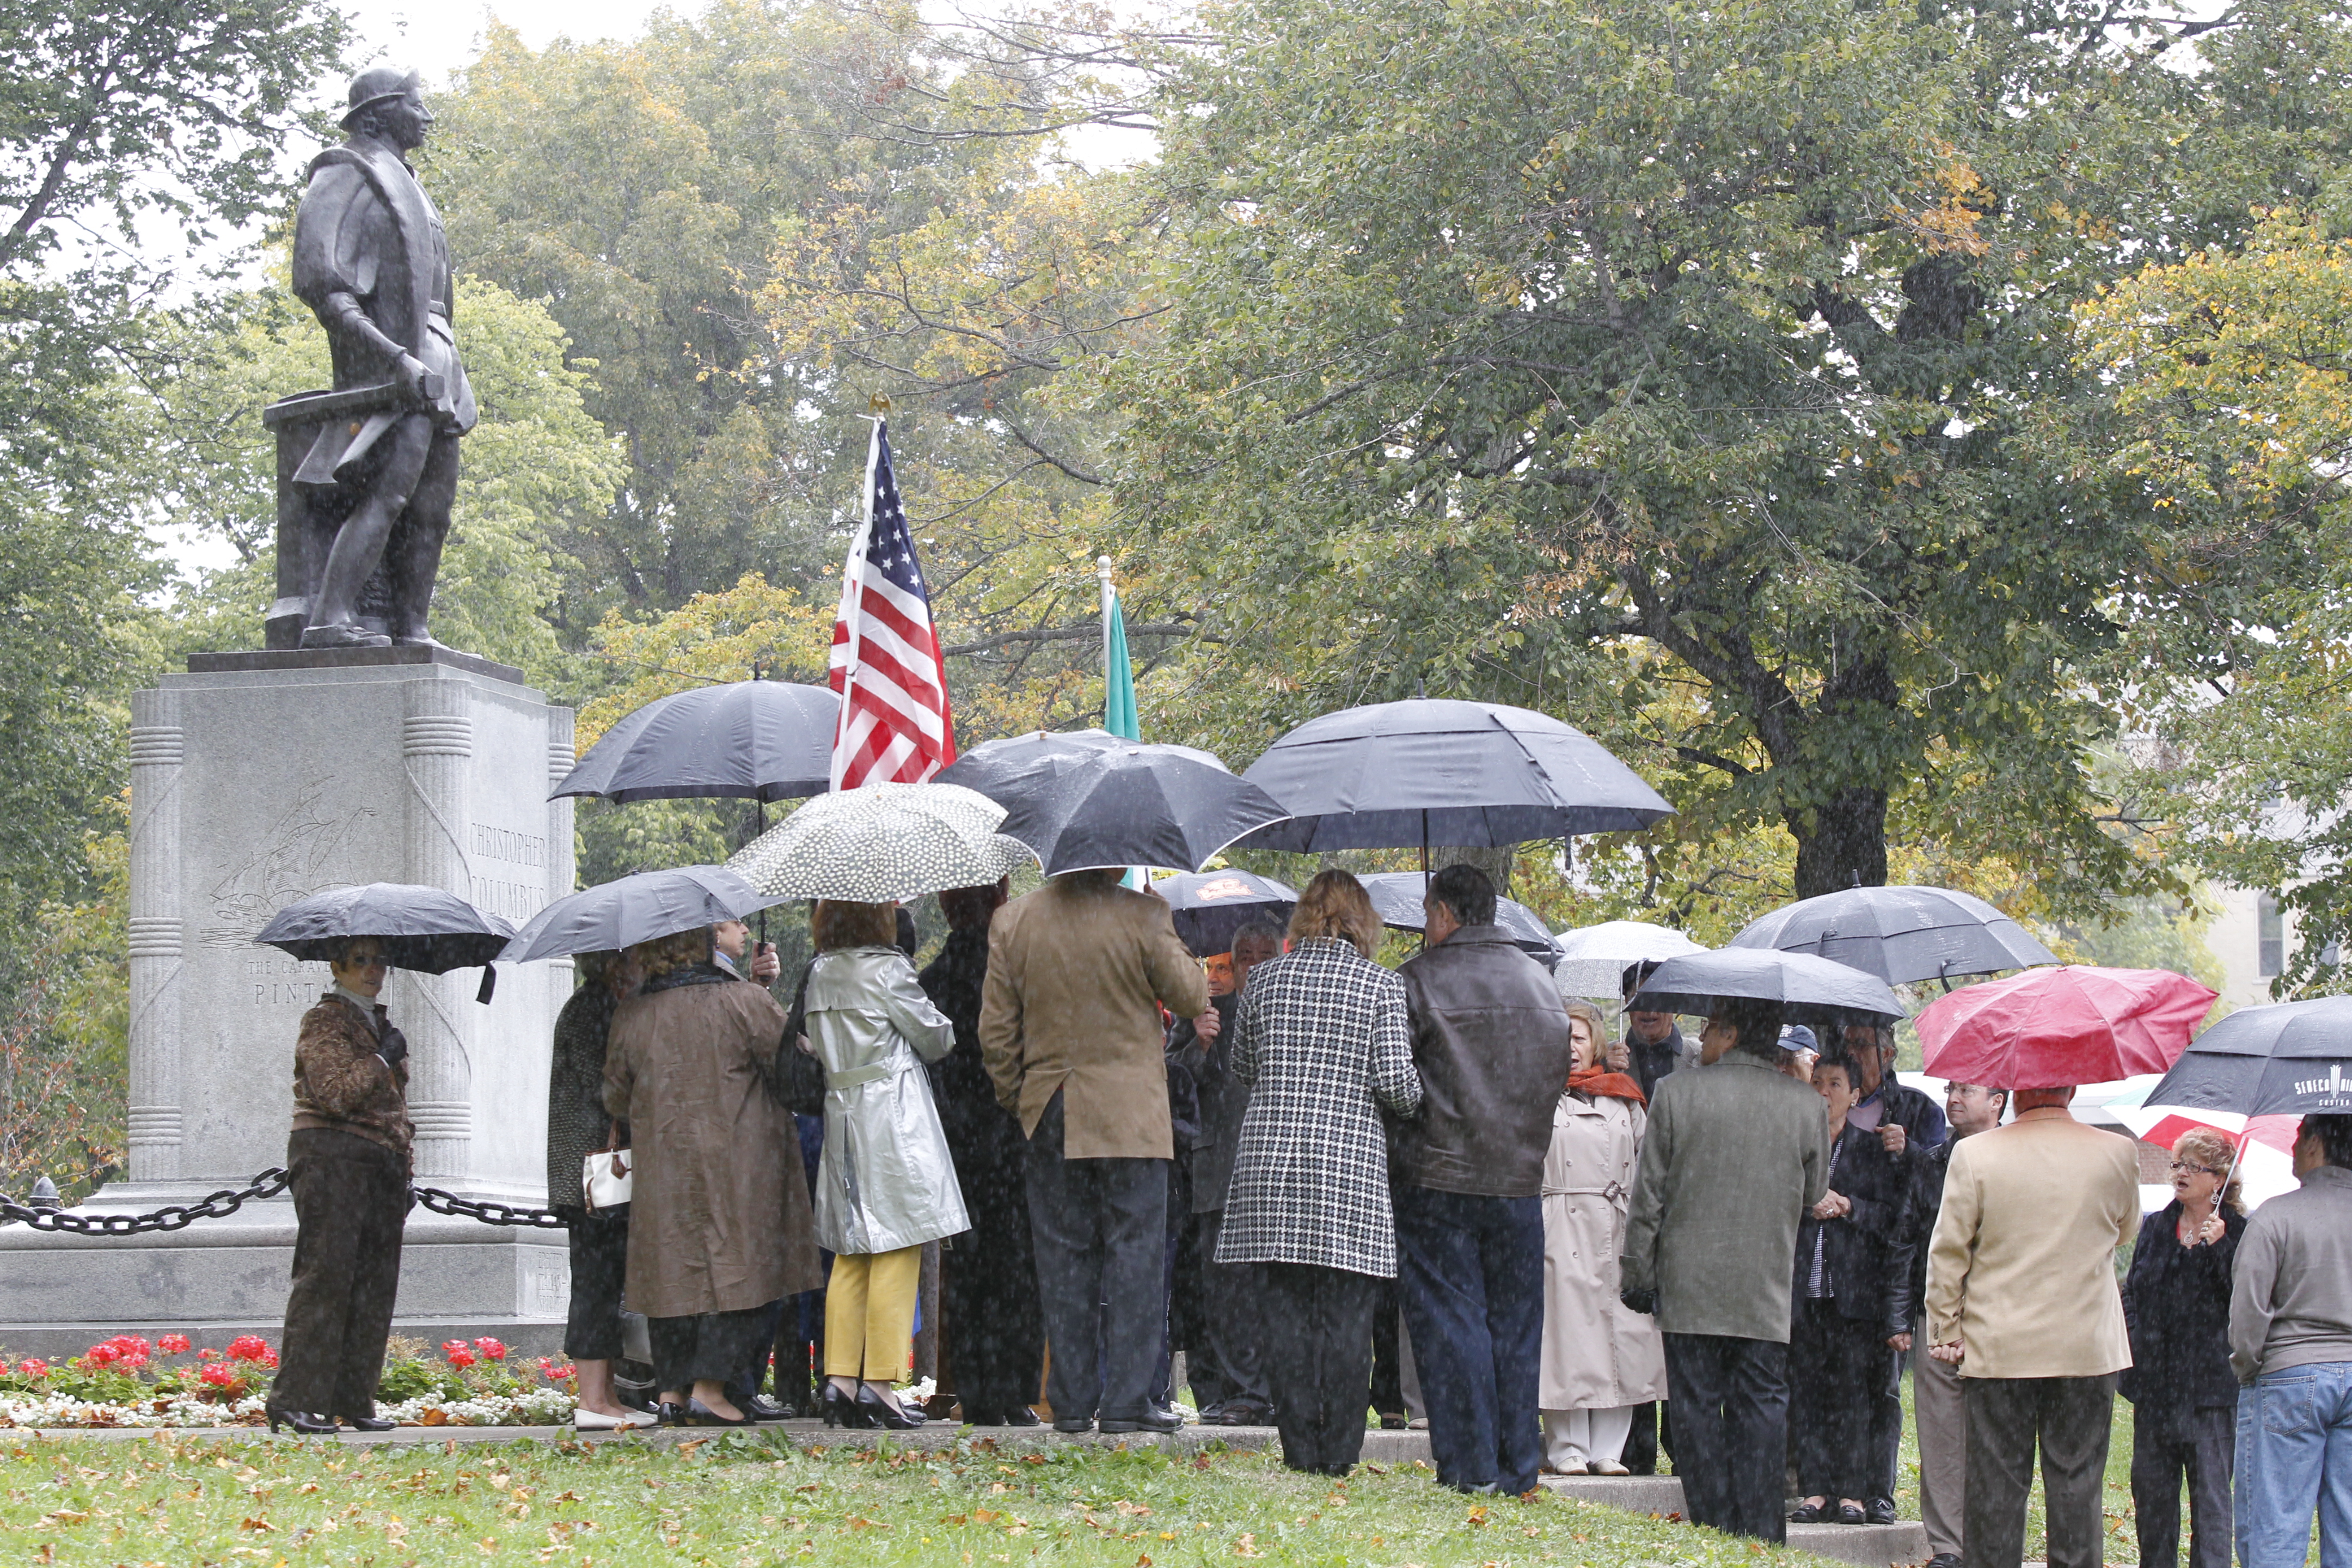 Members of the Italian American Societies of Western New York mark a rainy Columbus Day in 2012 at the Christopher Columbus statue in Prospect Park.  (Photo by Harry Scull Jr./Buffalo News)